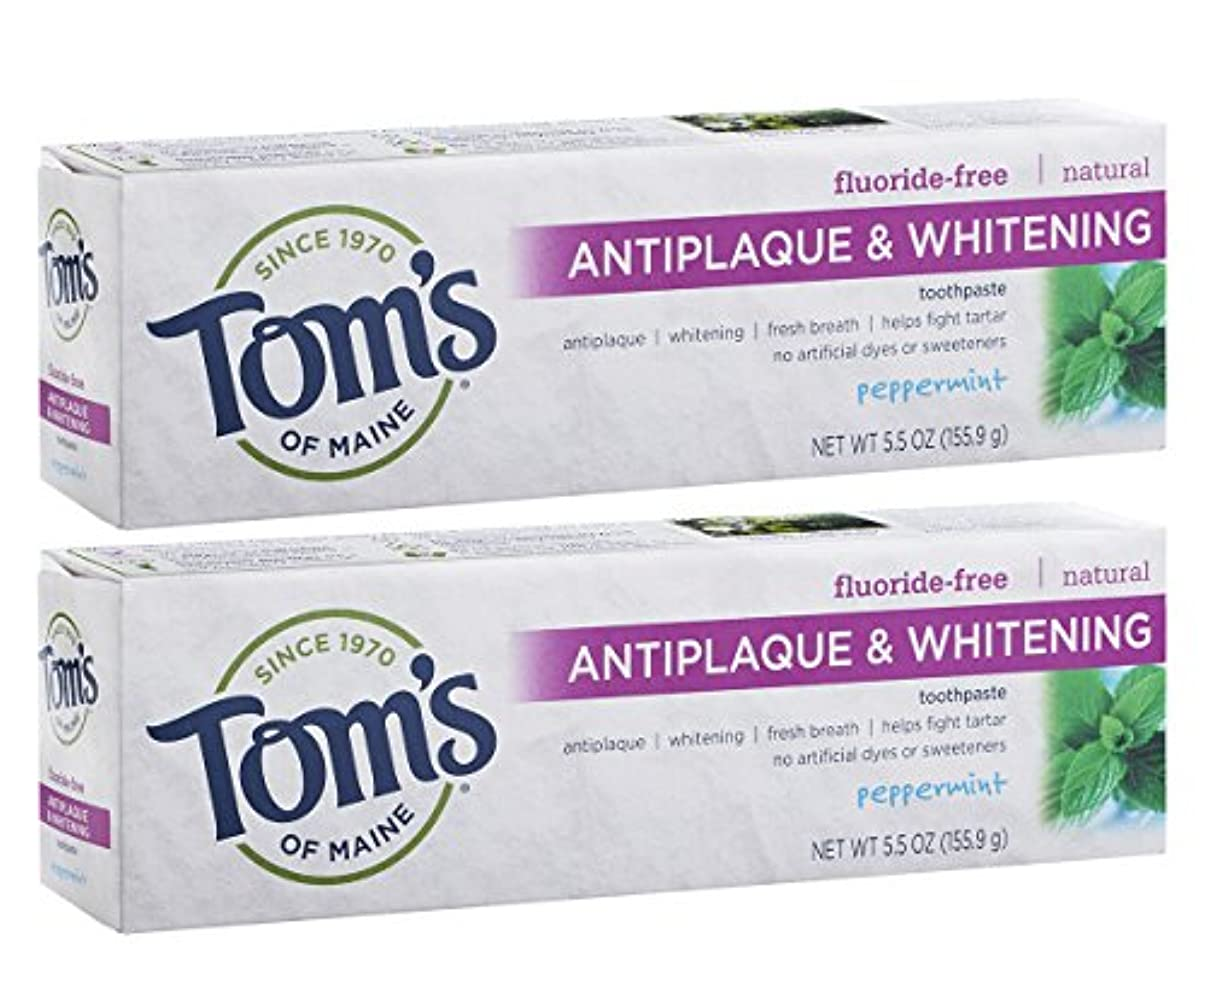 科学的サスティーン海賊Tom's of Maine Antiplaque And Whitening Fluoride-Free Toothpaste, Peppermint, 5.5-Ounce by Tom's of Maine